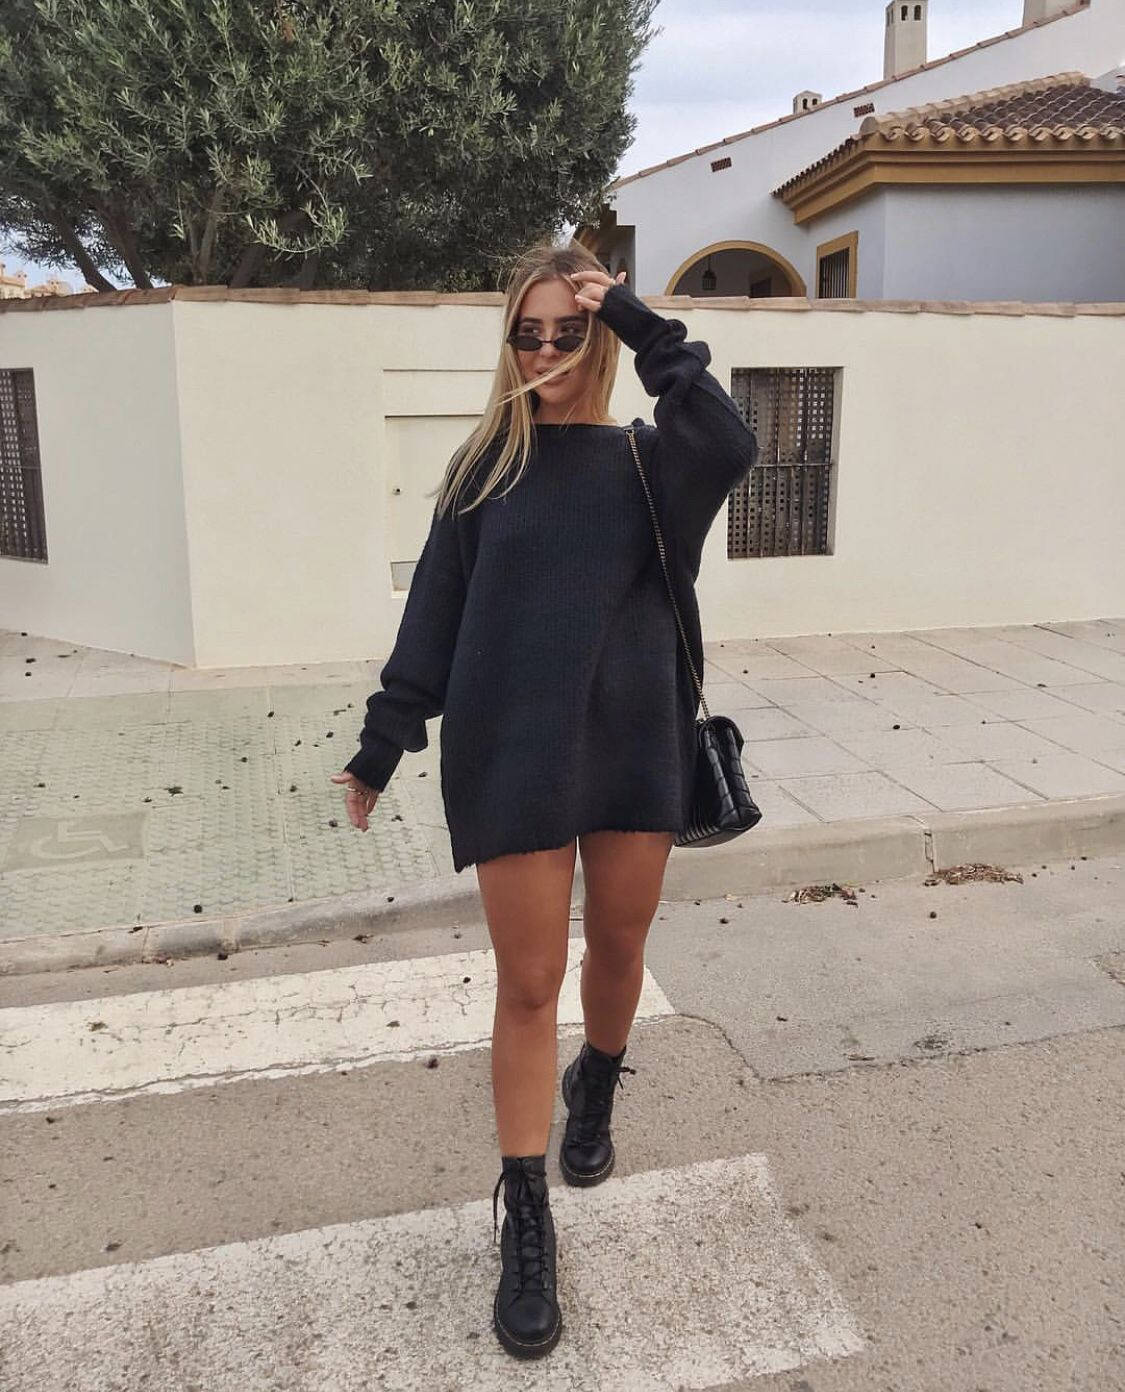 Pin by aniaalexis on fall looks (With images) Fashion